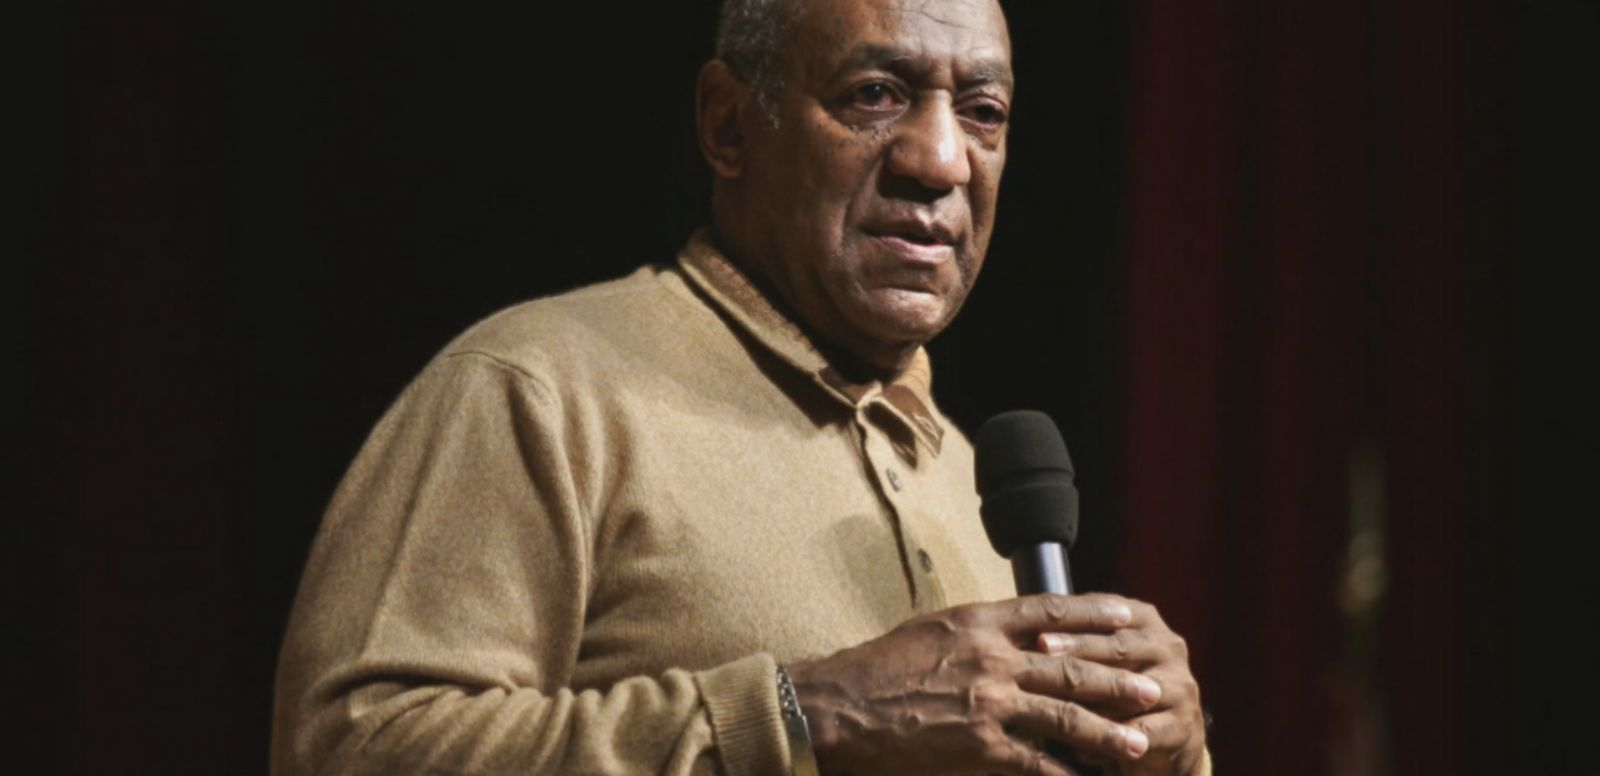 VIDEO: Bill Cosby Admitted Giving Quaaludes to a Woman, Court Filings Say